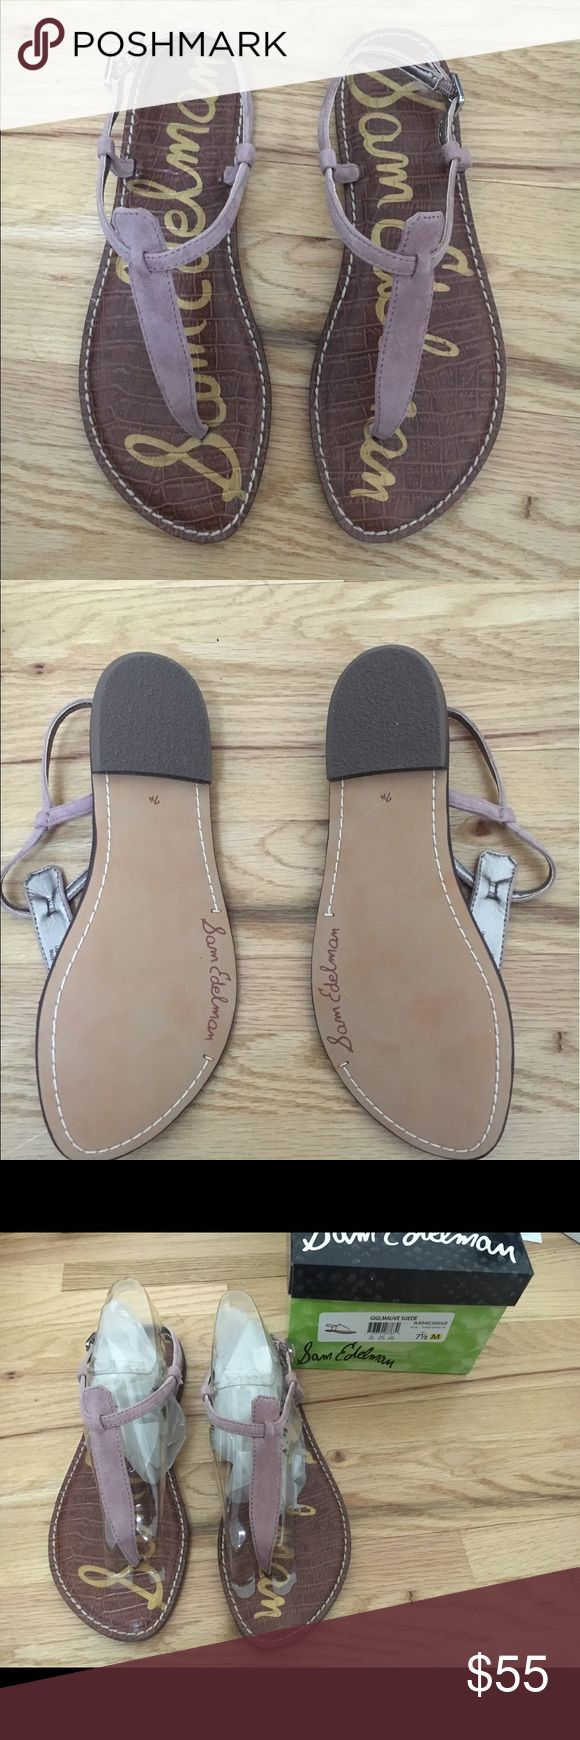 Sam Edelman Gigi Mauve Suede Sandals- Brand New The classic Sam Edelman Gigi sandal. Beautiful Mauve. Brand new- Never Worn. Size 7.5 Sam Edelman Shoes Sandals